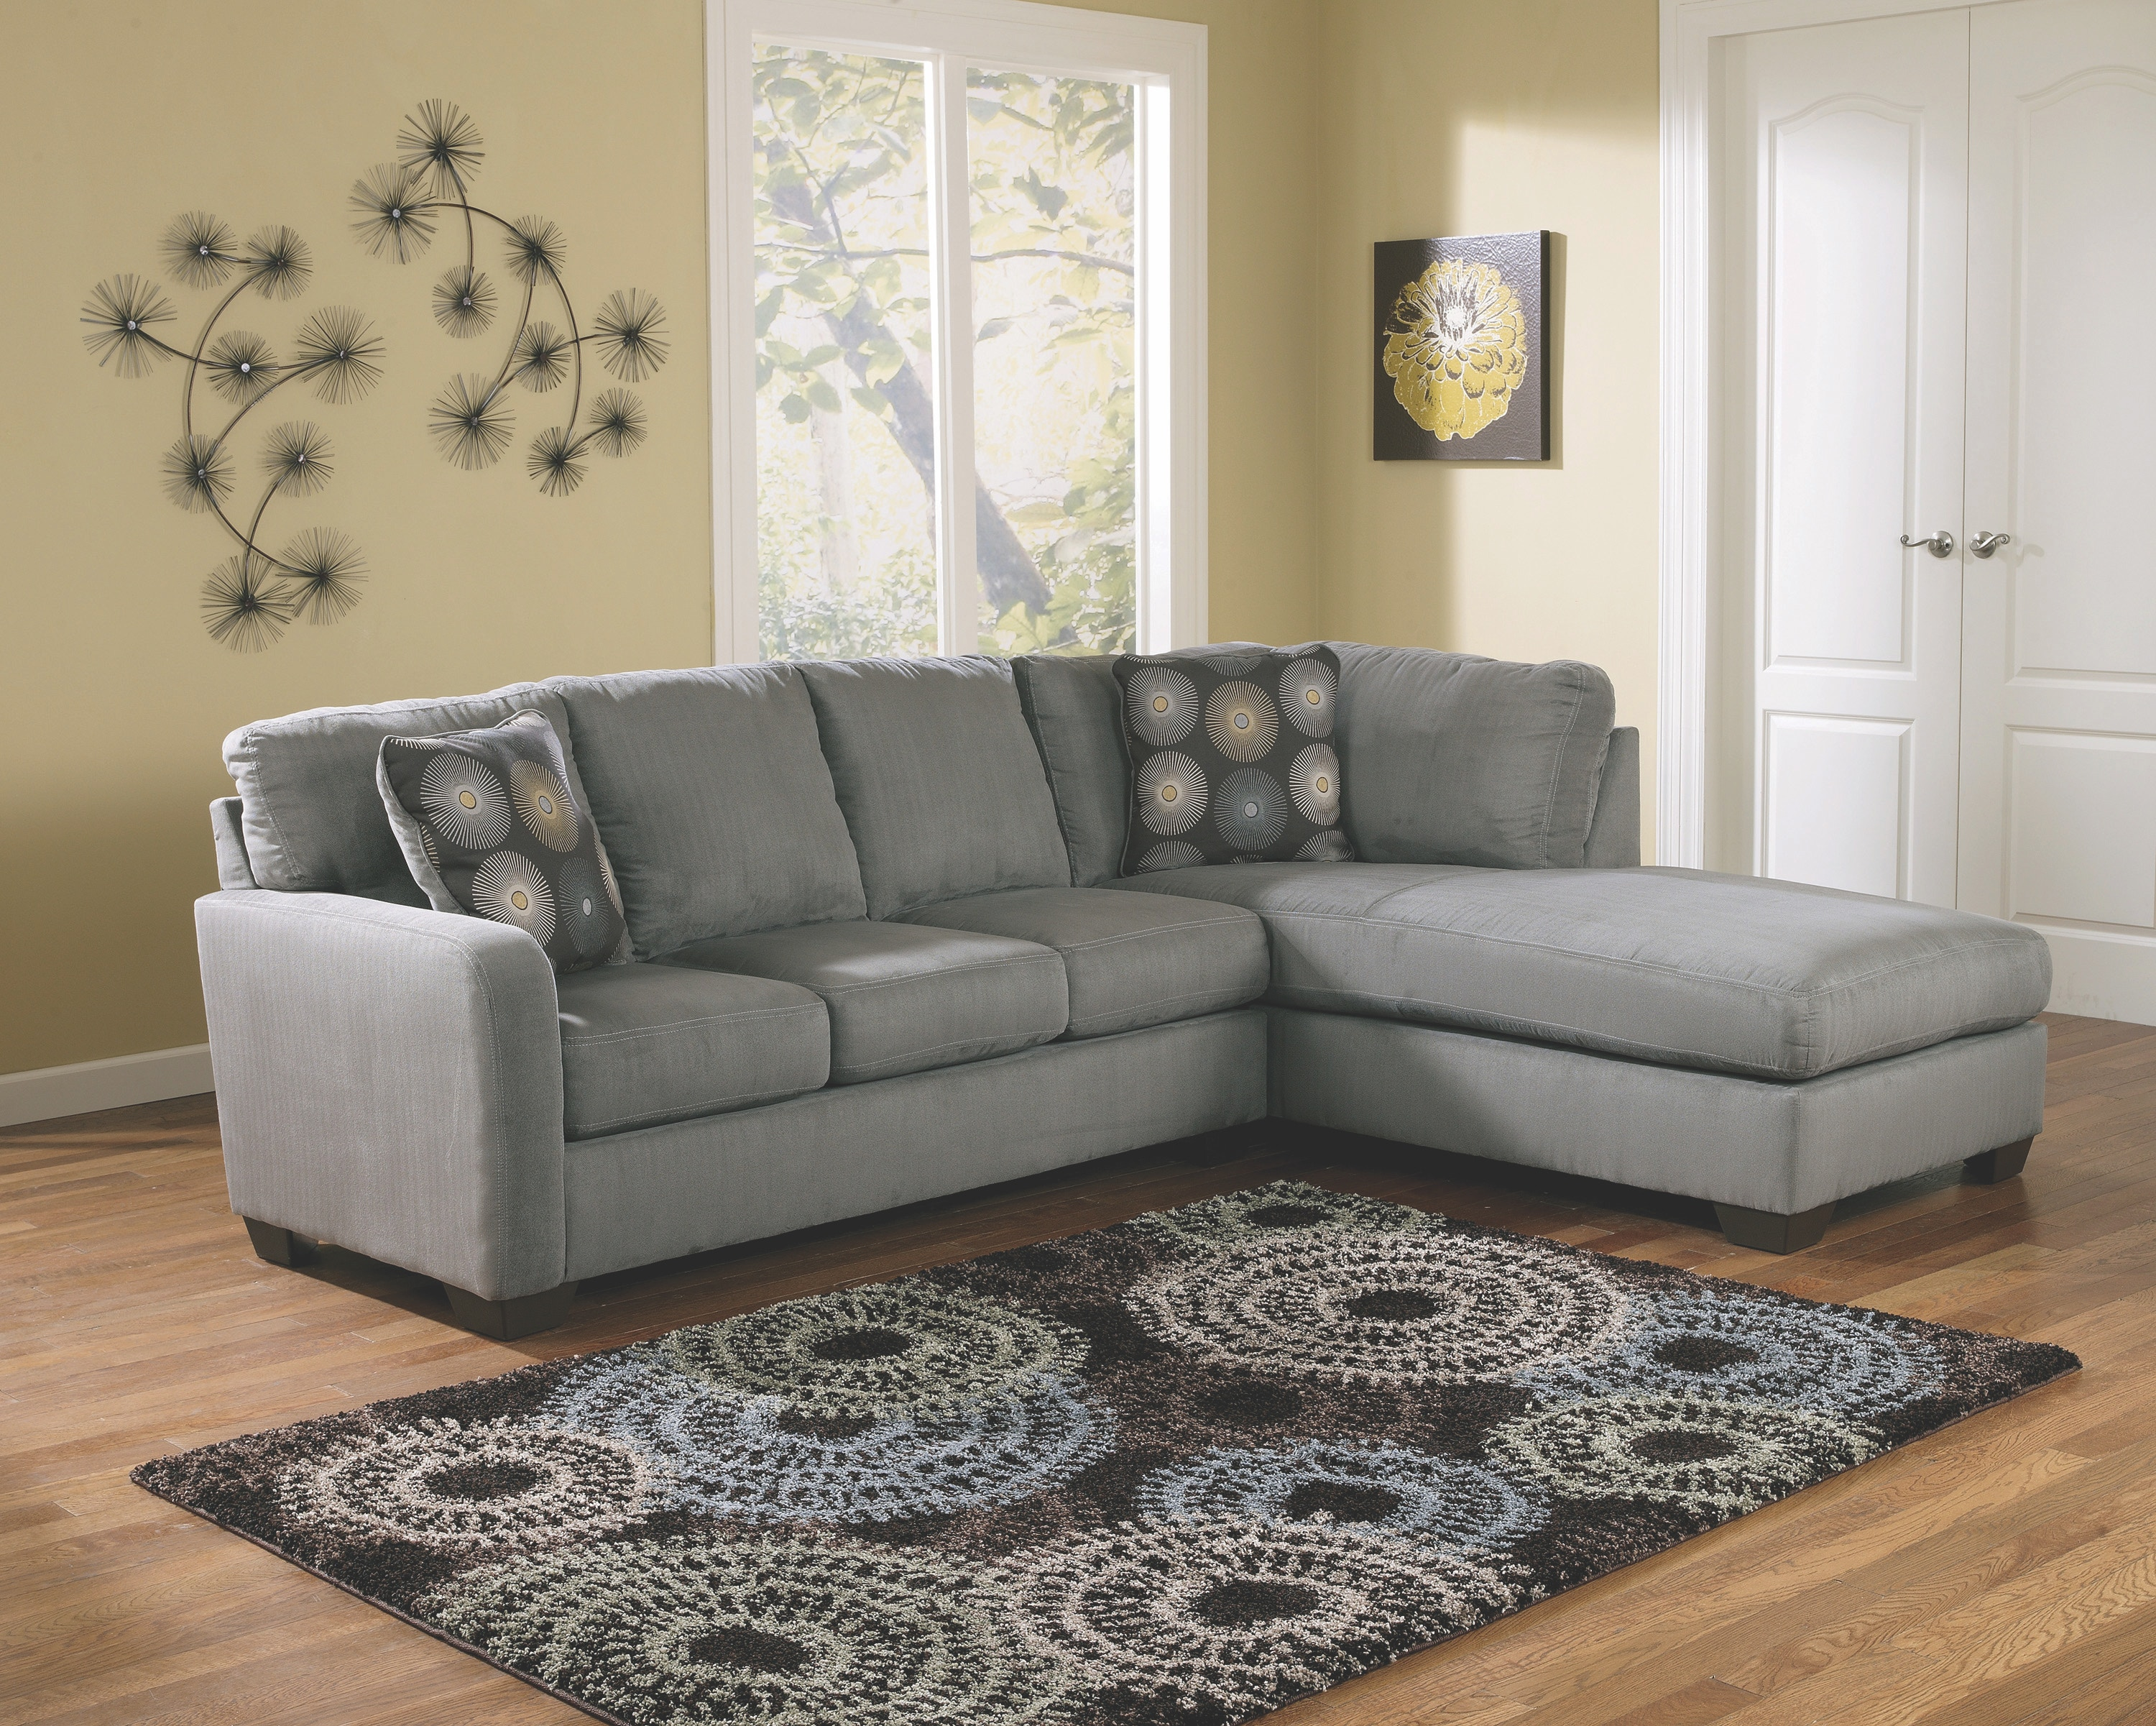 Signature Design by Ashley Zella Charcoal Right Chaise Sectional 275120 : signature sectional - Sectionals, Sofas & Couches